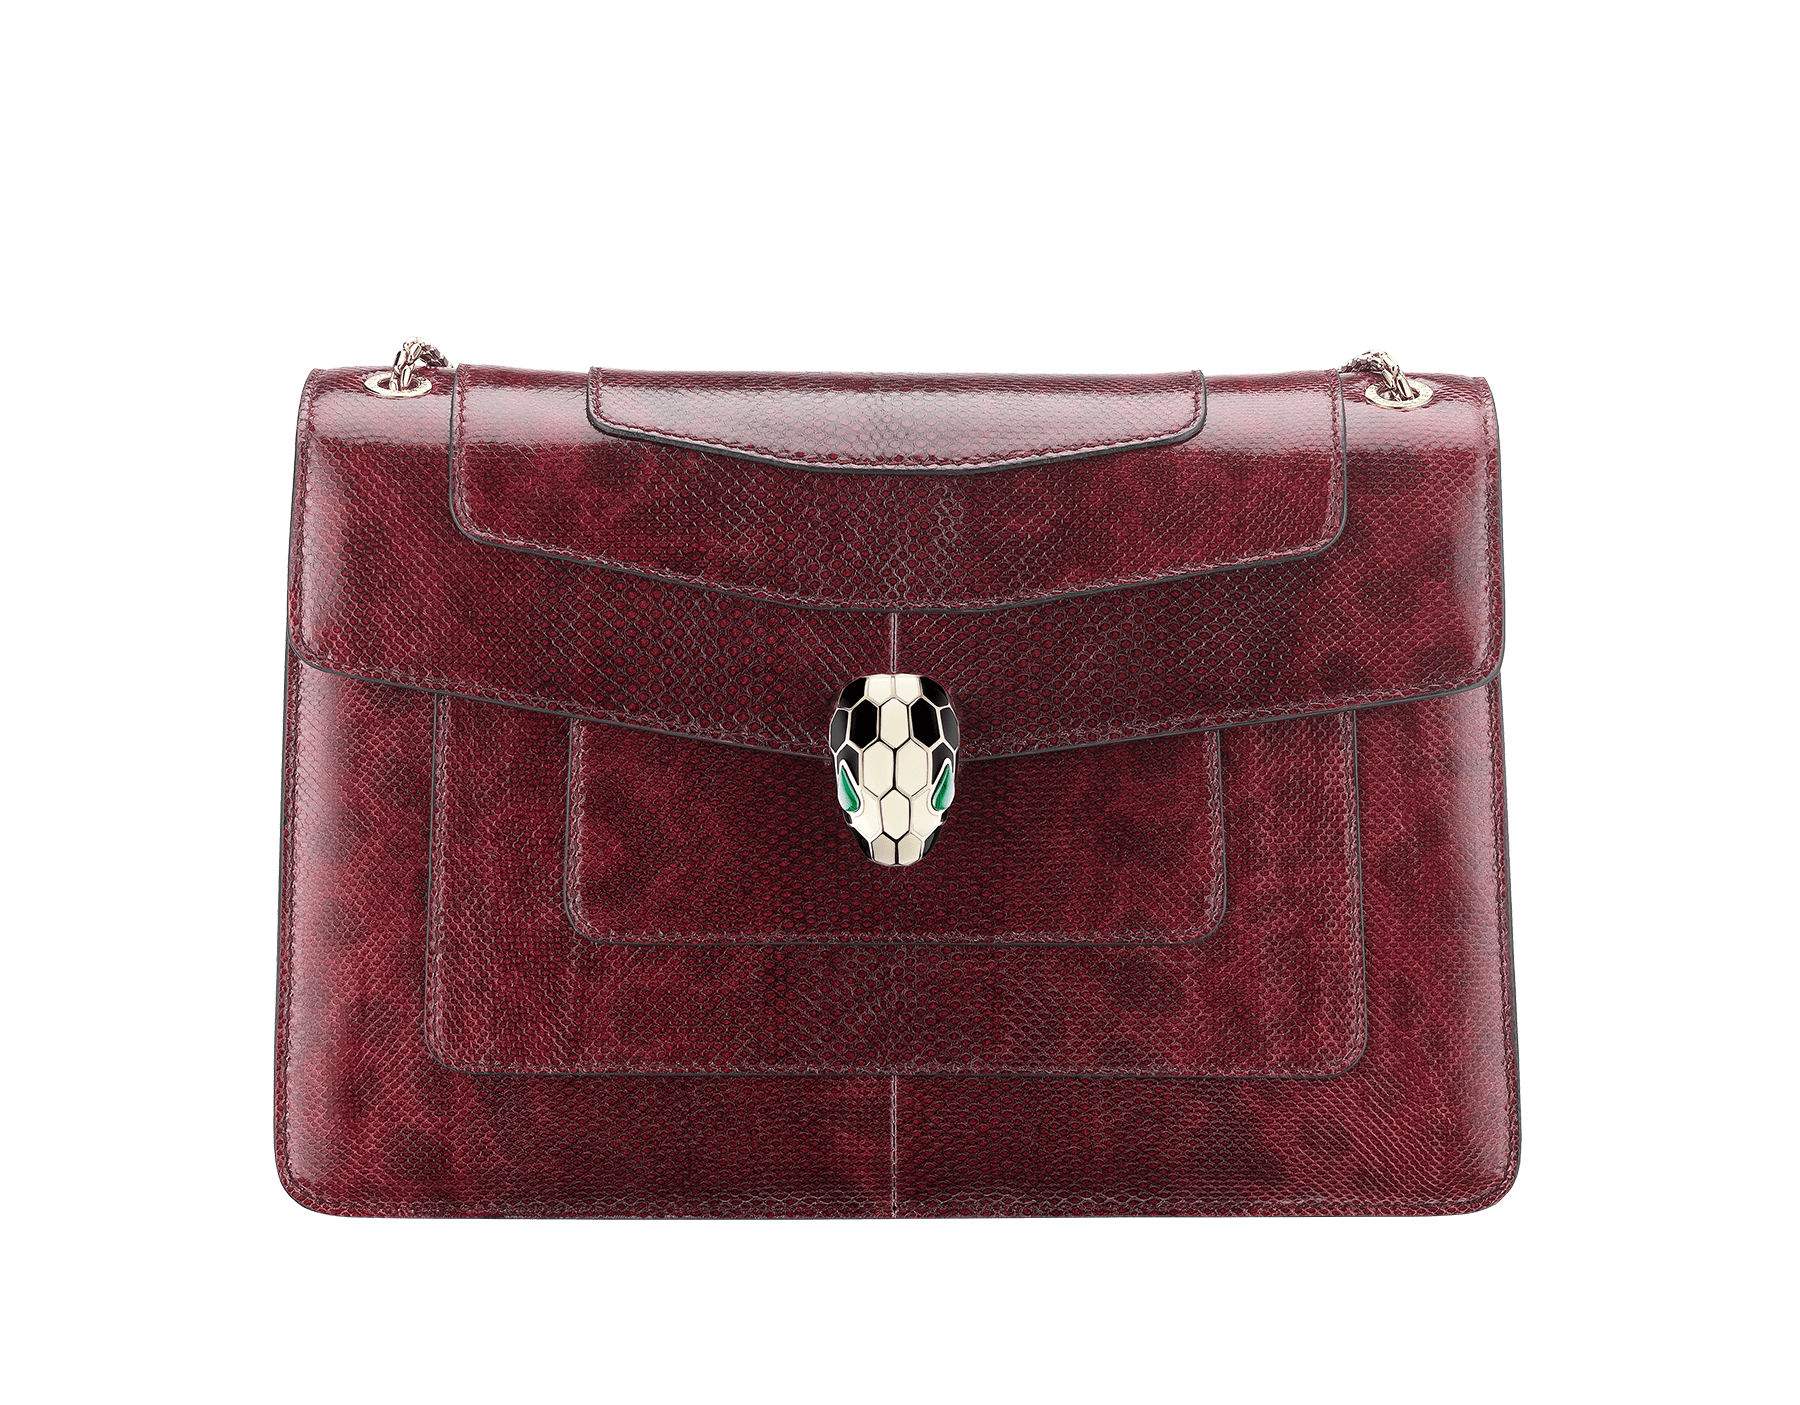 Flap cover bag Serpenti Forever in roman garnet shiny karung skin. Brass light gold plated tempting snake head closure in shiny black and white enamel, with eyes in green malachite. 286199 image 1